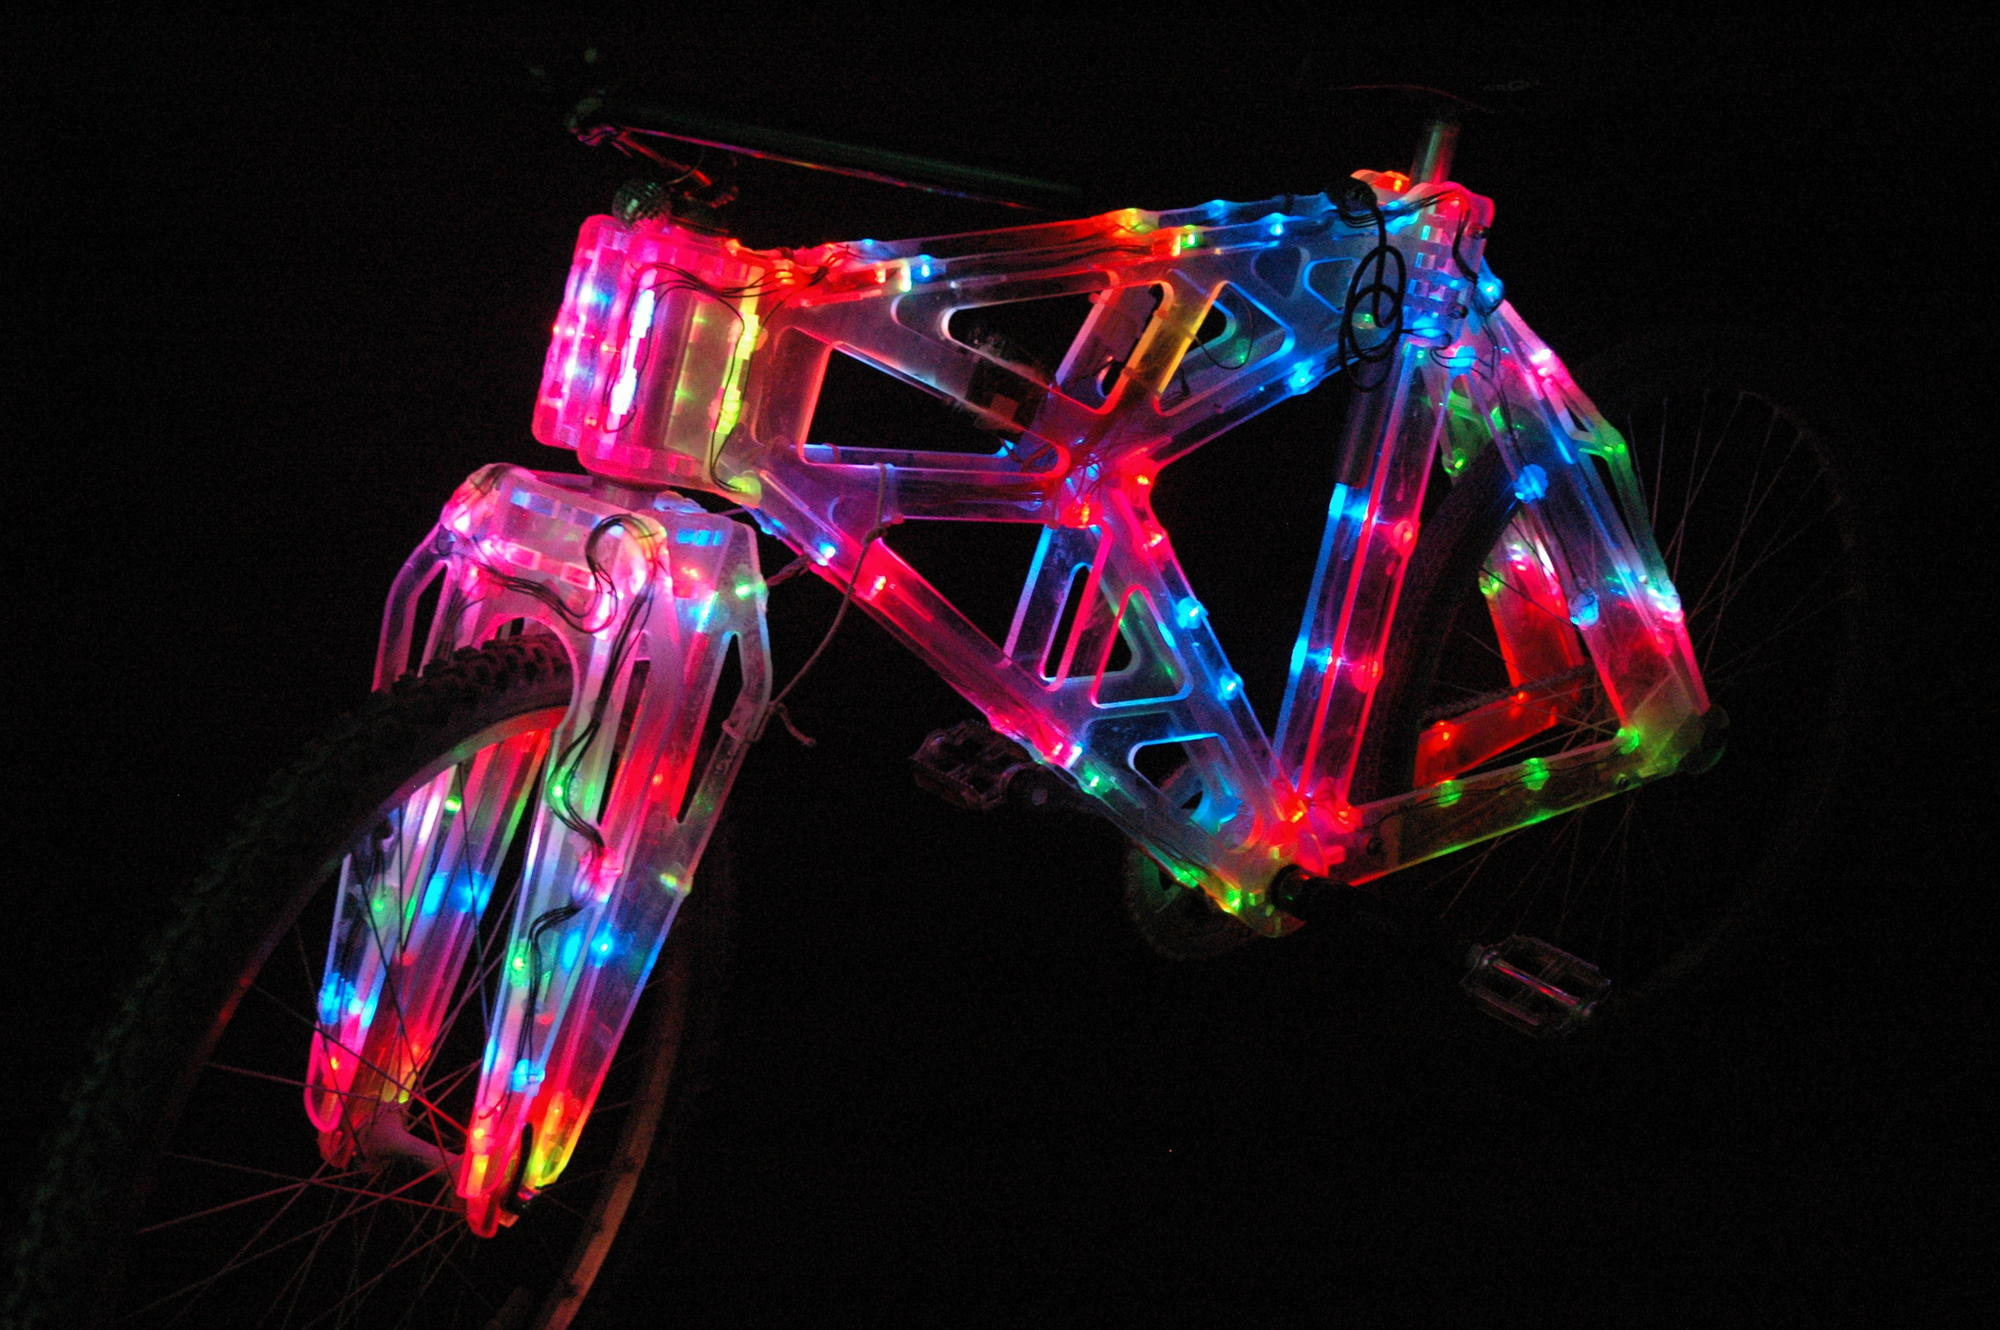 Tron bike: clear plastic bike with LED edge lighting